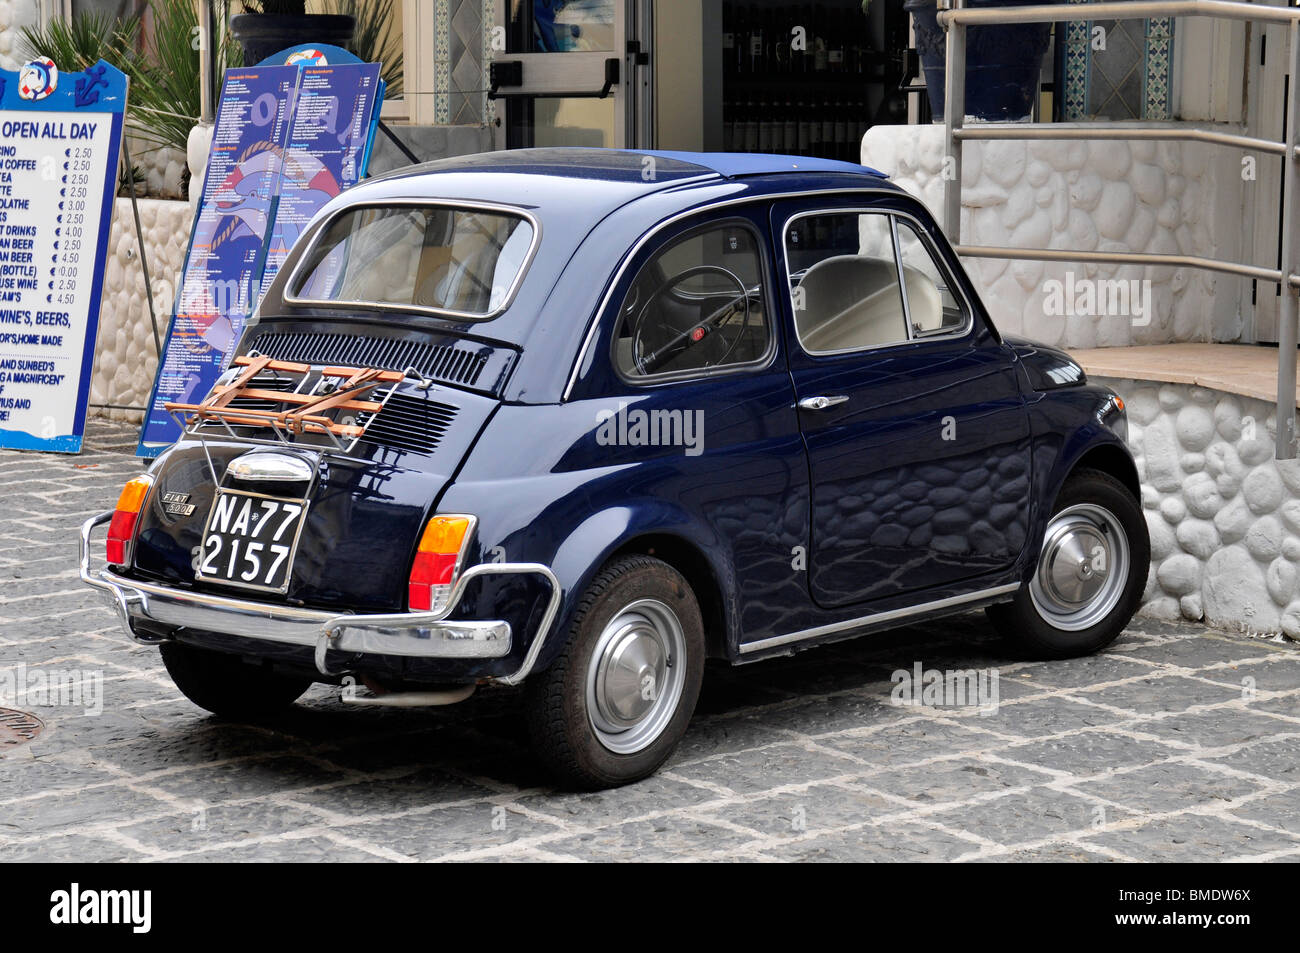 classic fiat 500 car italy stock photo royalty free image 29808658 alamy. Black Bedroom Furniture Sets. Home Design Ideas